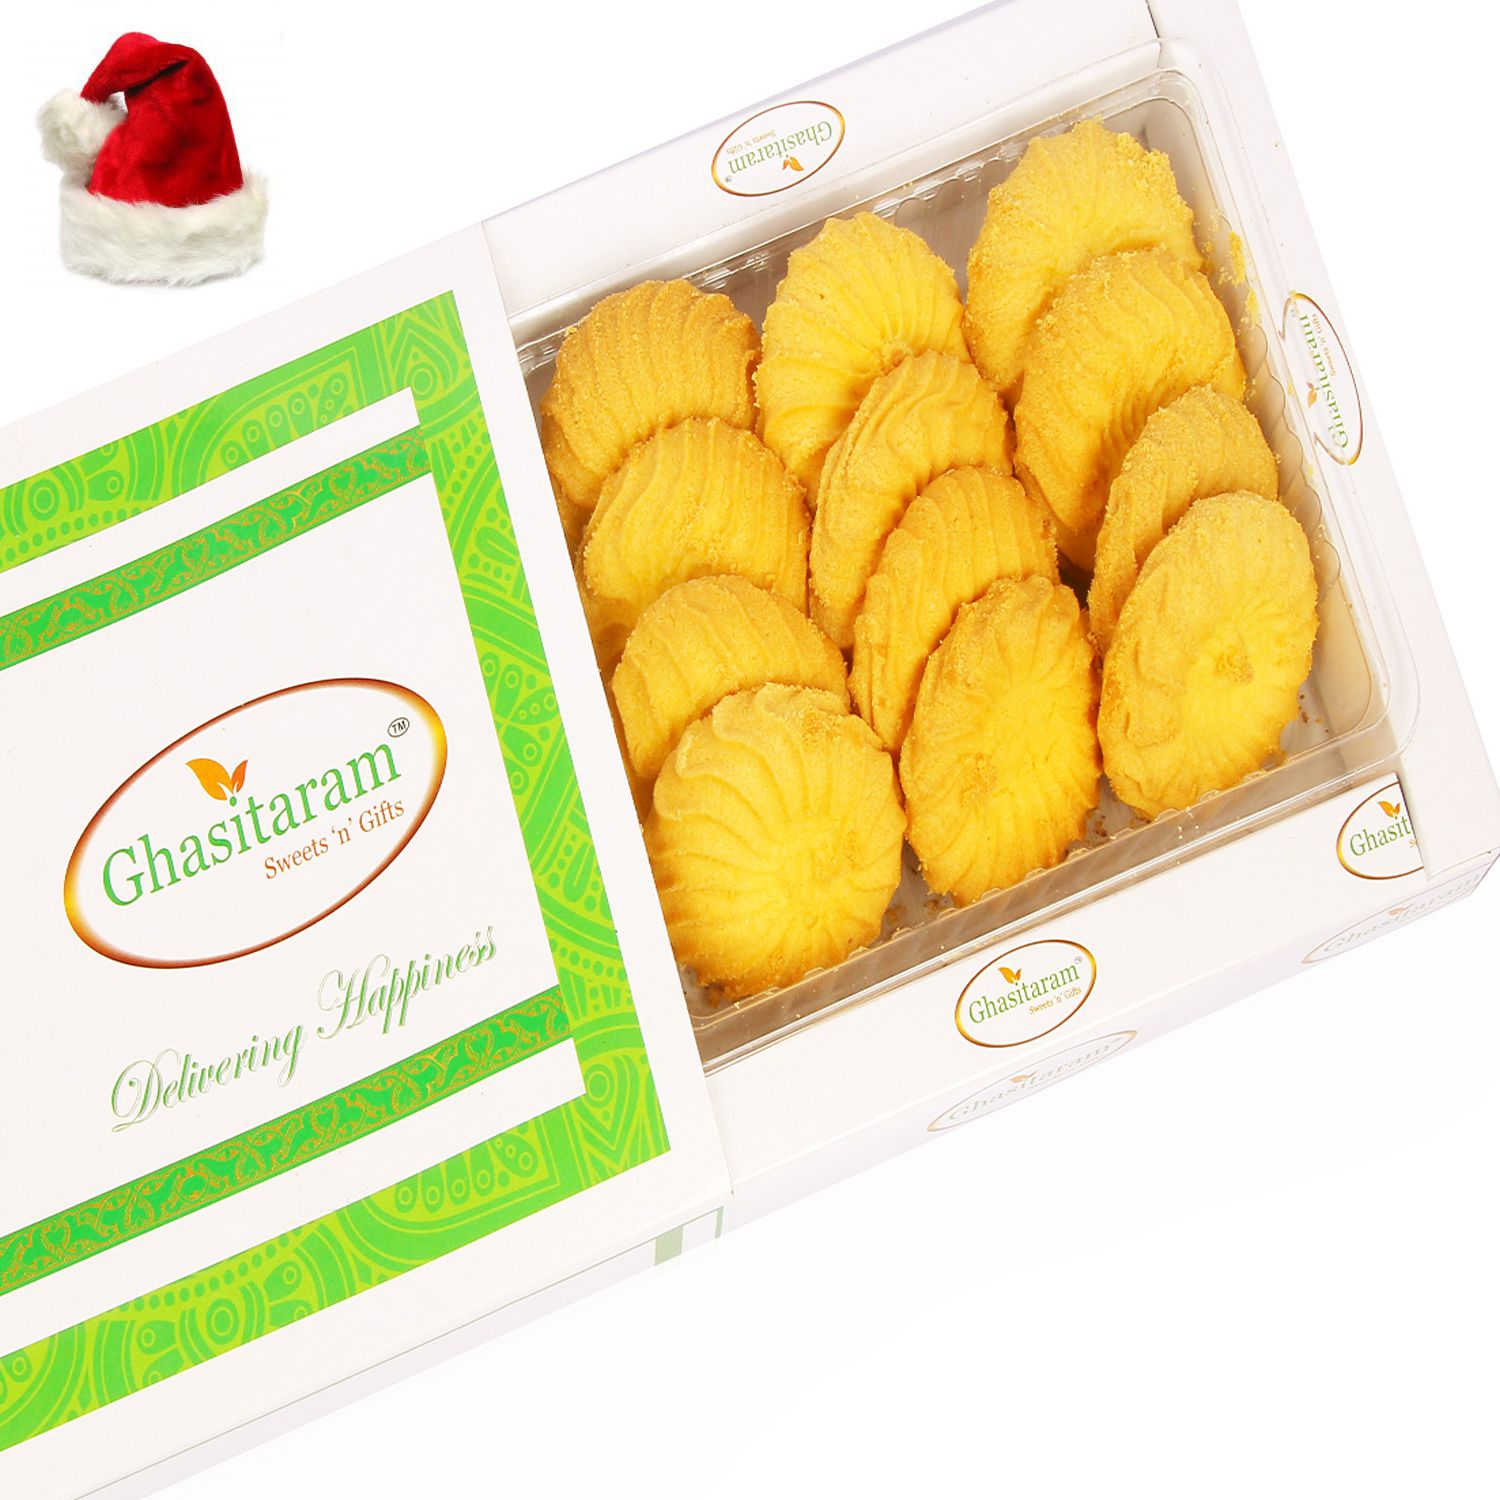 Ghasitaram Gifts Christmas Gifts Cookies Assorted Box Butter Cookies ...